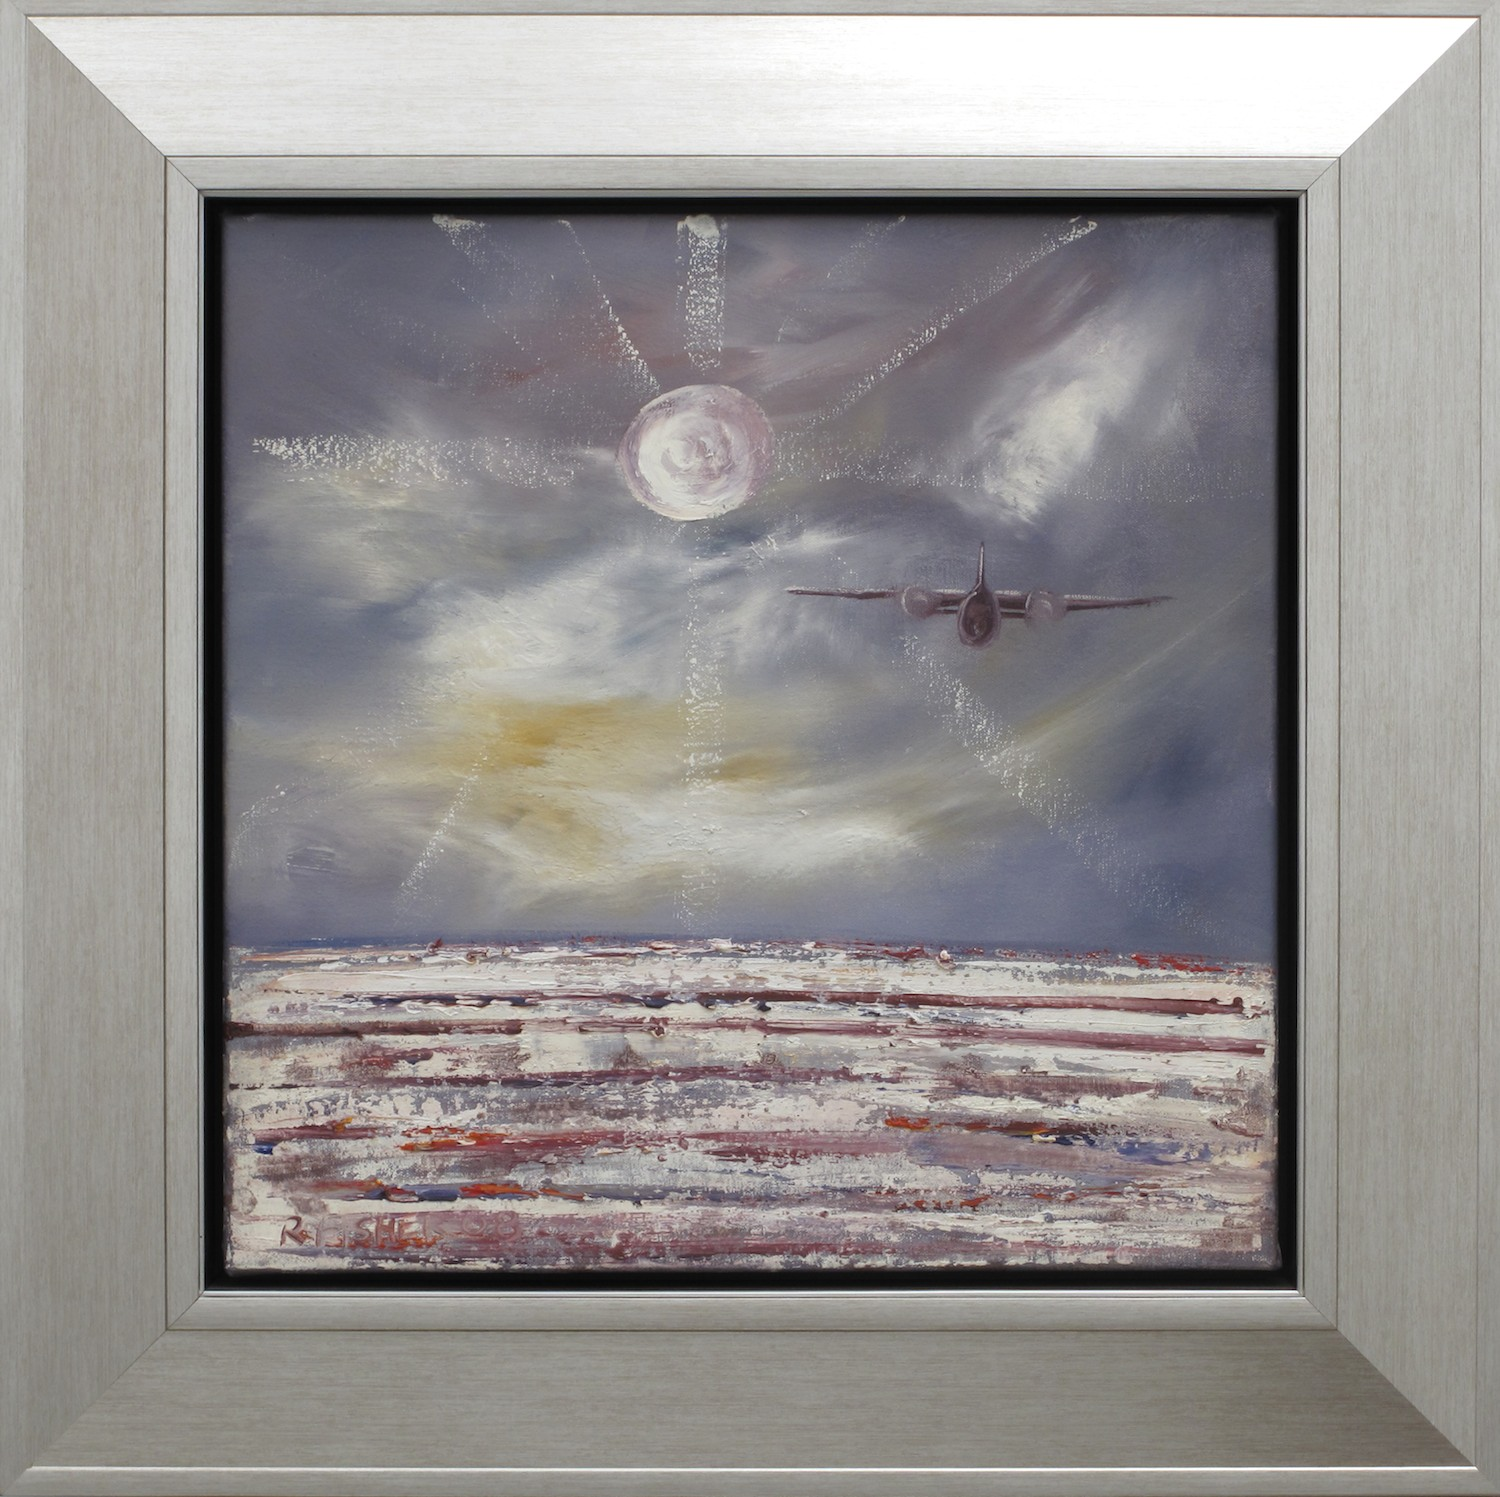 Robert Fisher. Last Flight Lake Eyre Moon I. 65cm x 65cm #9570.